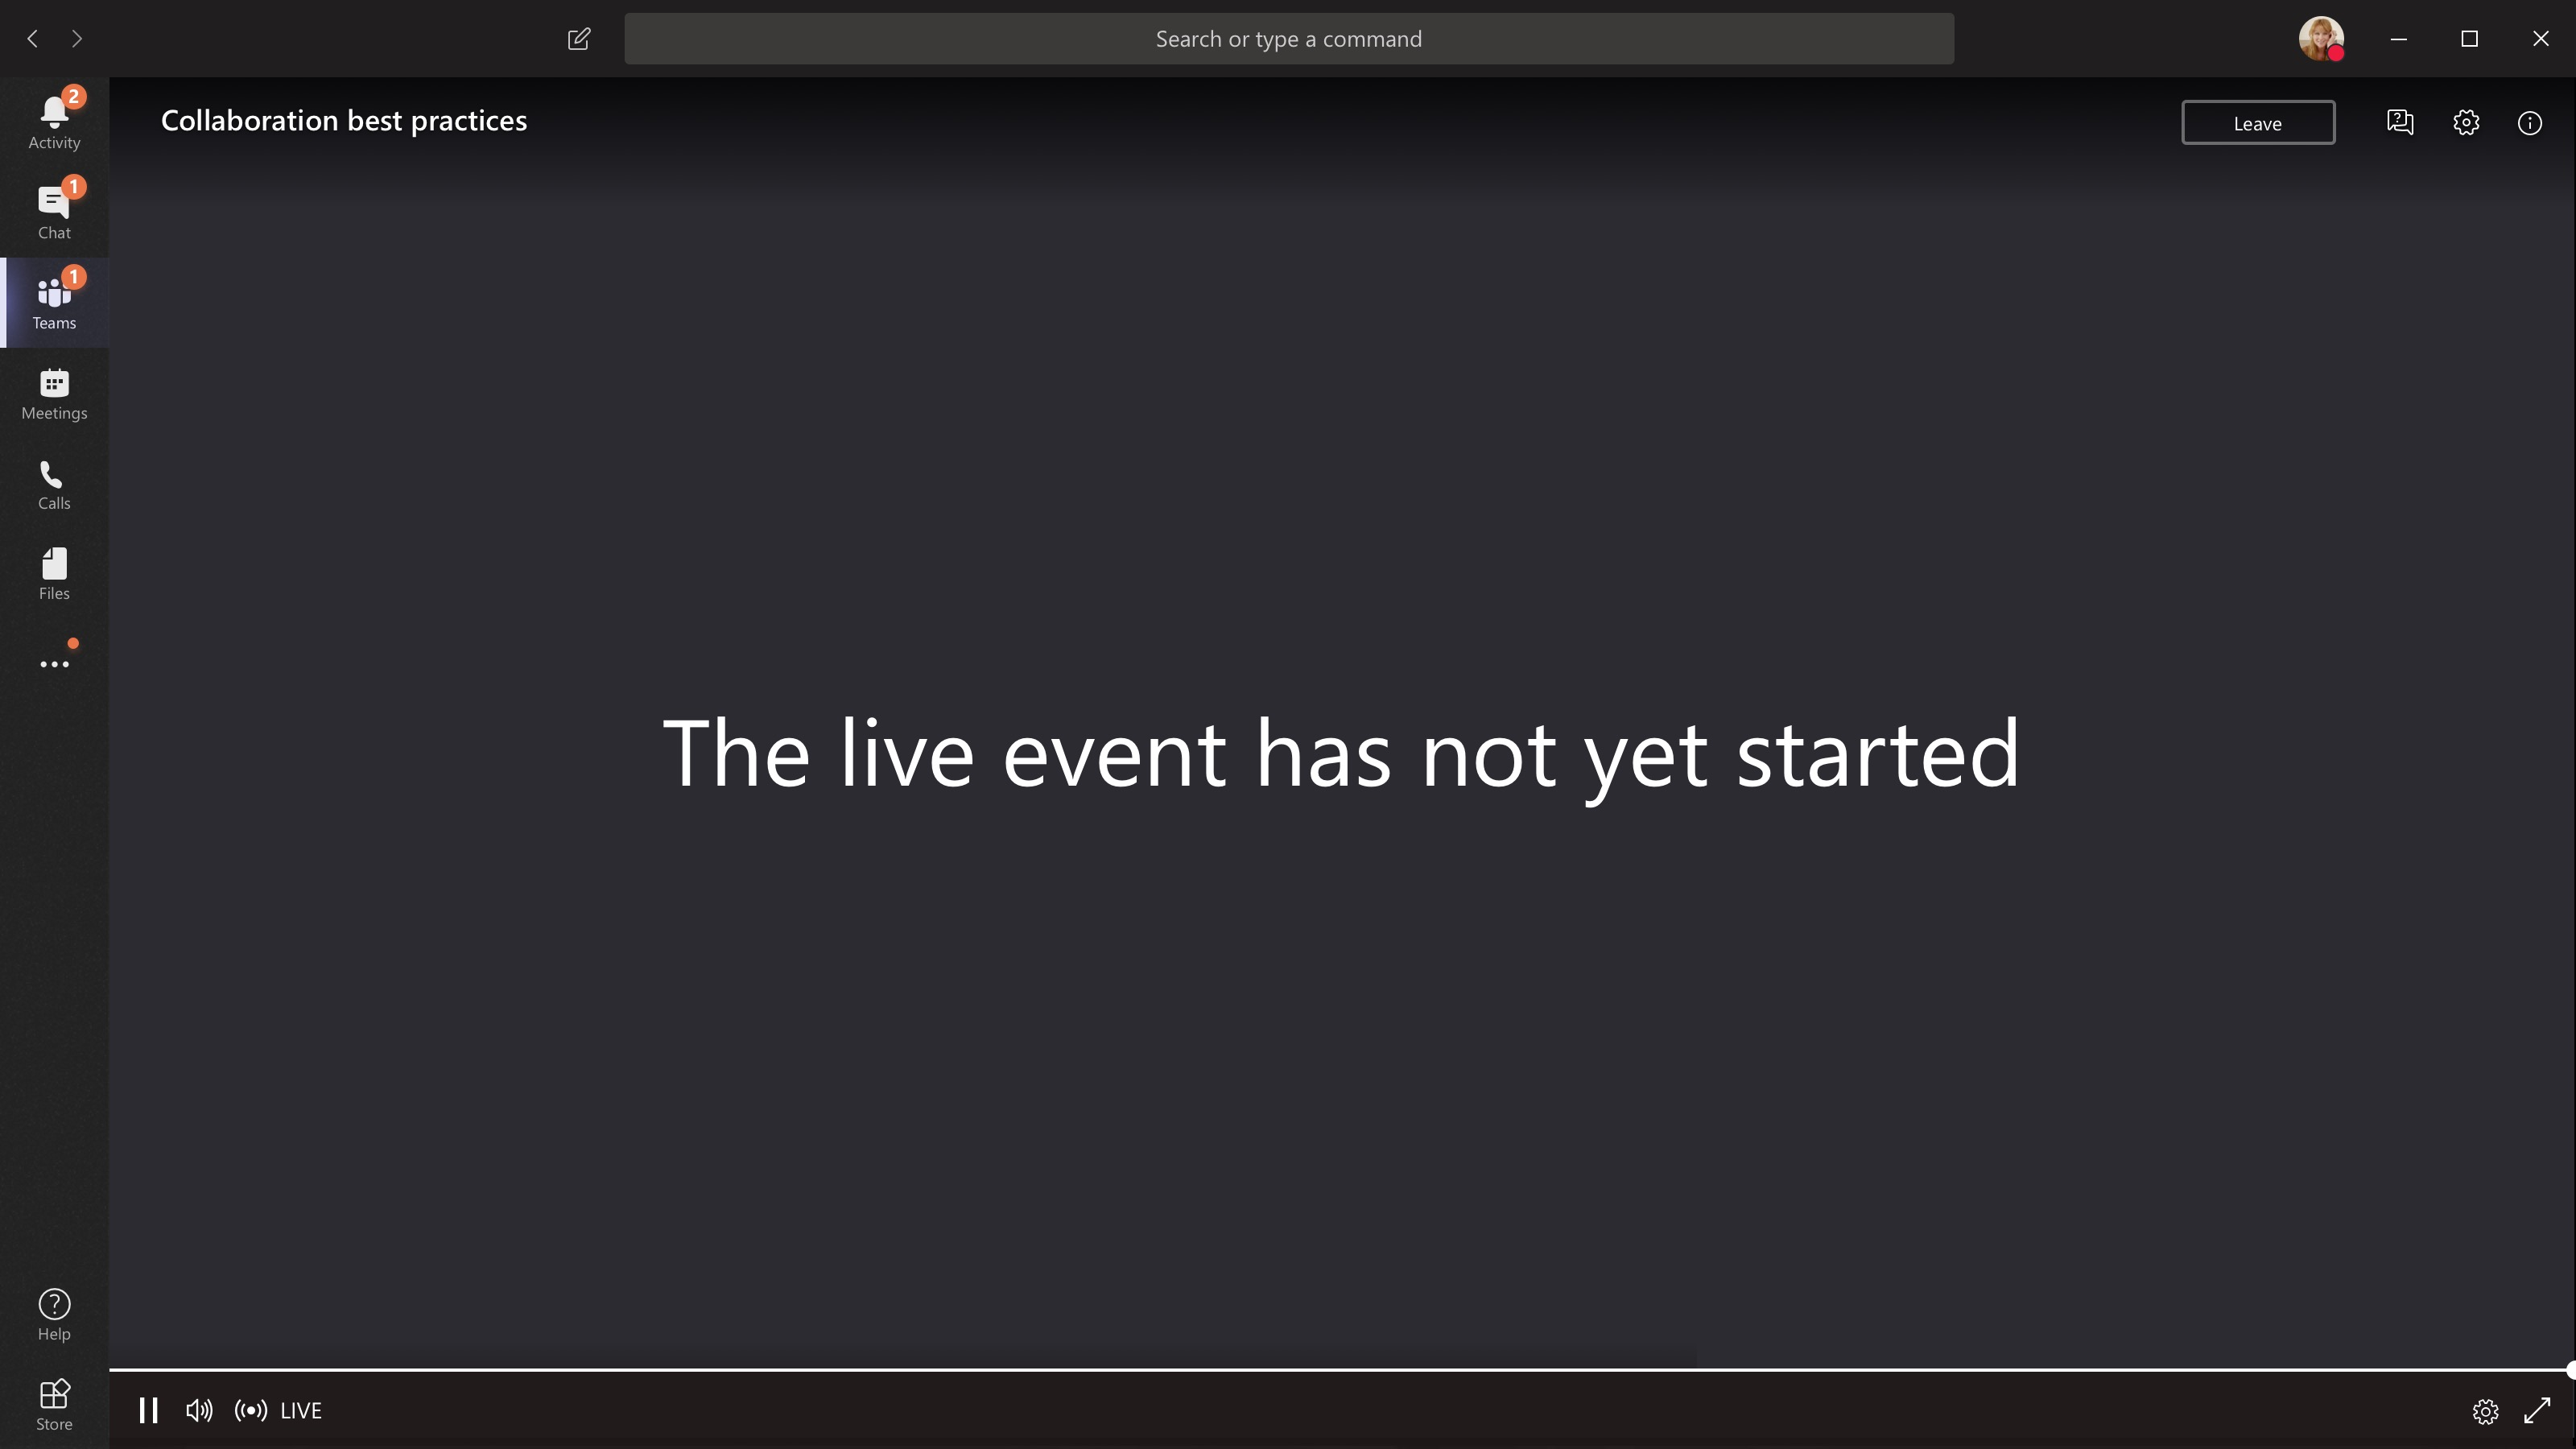 Event not started